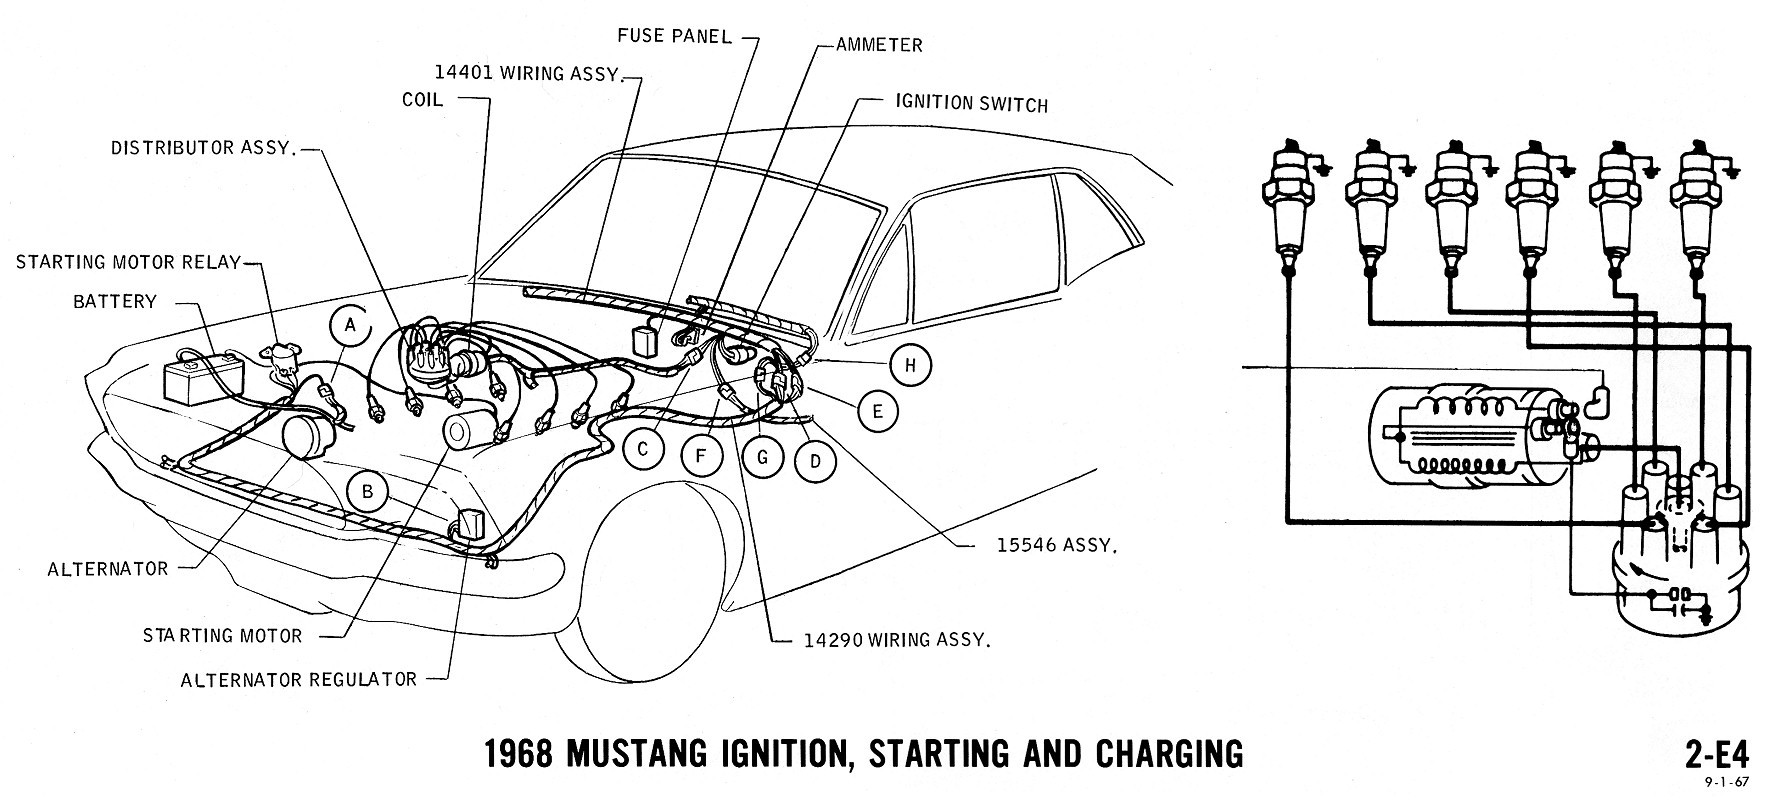 1968 Mustang Ignition, Starting And Charging Diagram